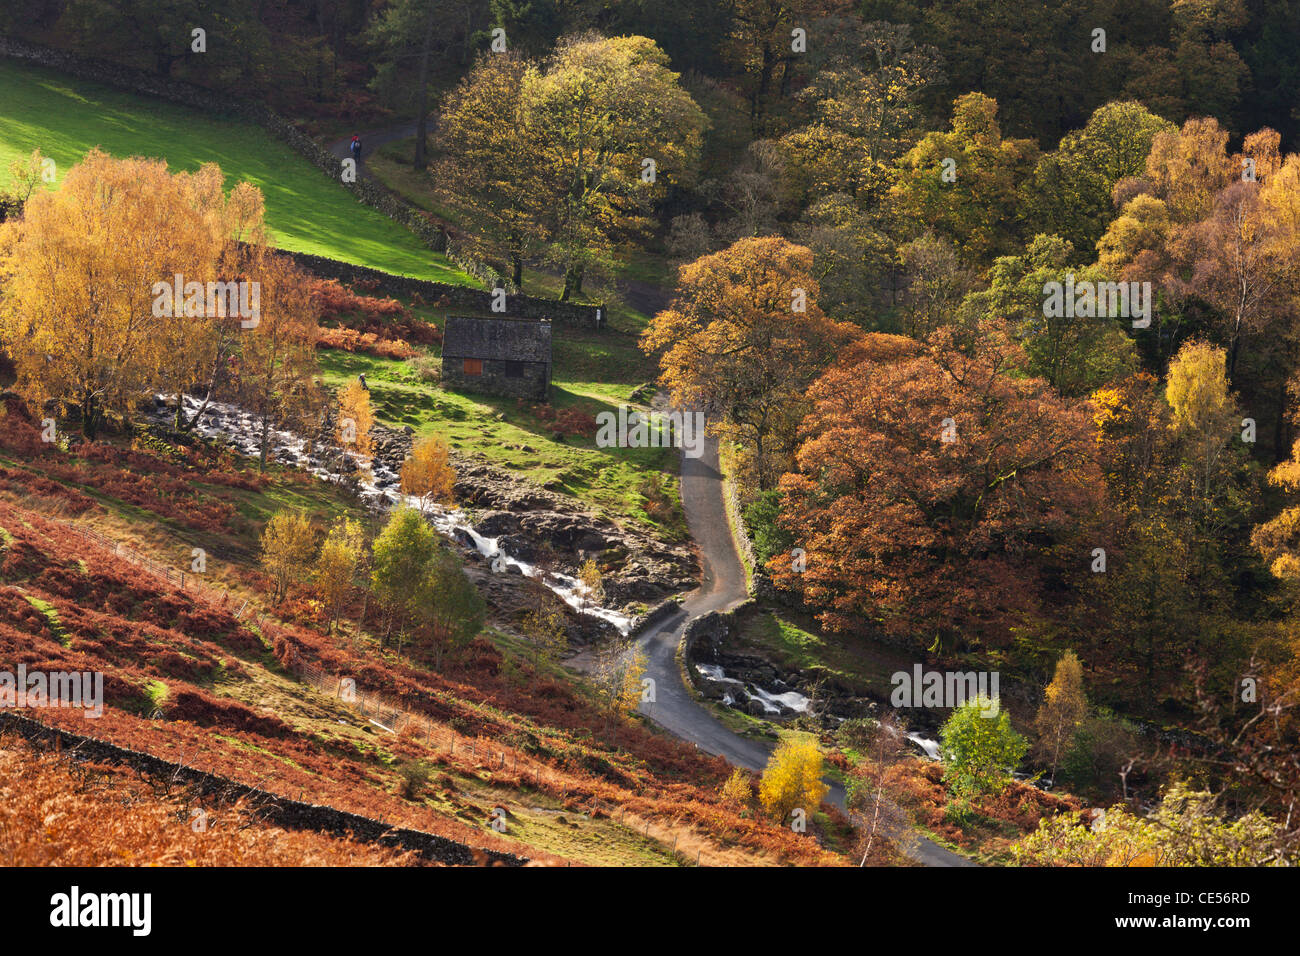 Country lane passing over Barrow Beck on Ashness Bridge, Lake District, Cumbria, England. Autumn (November) 2011. - Stock Image